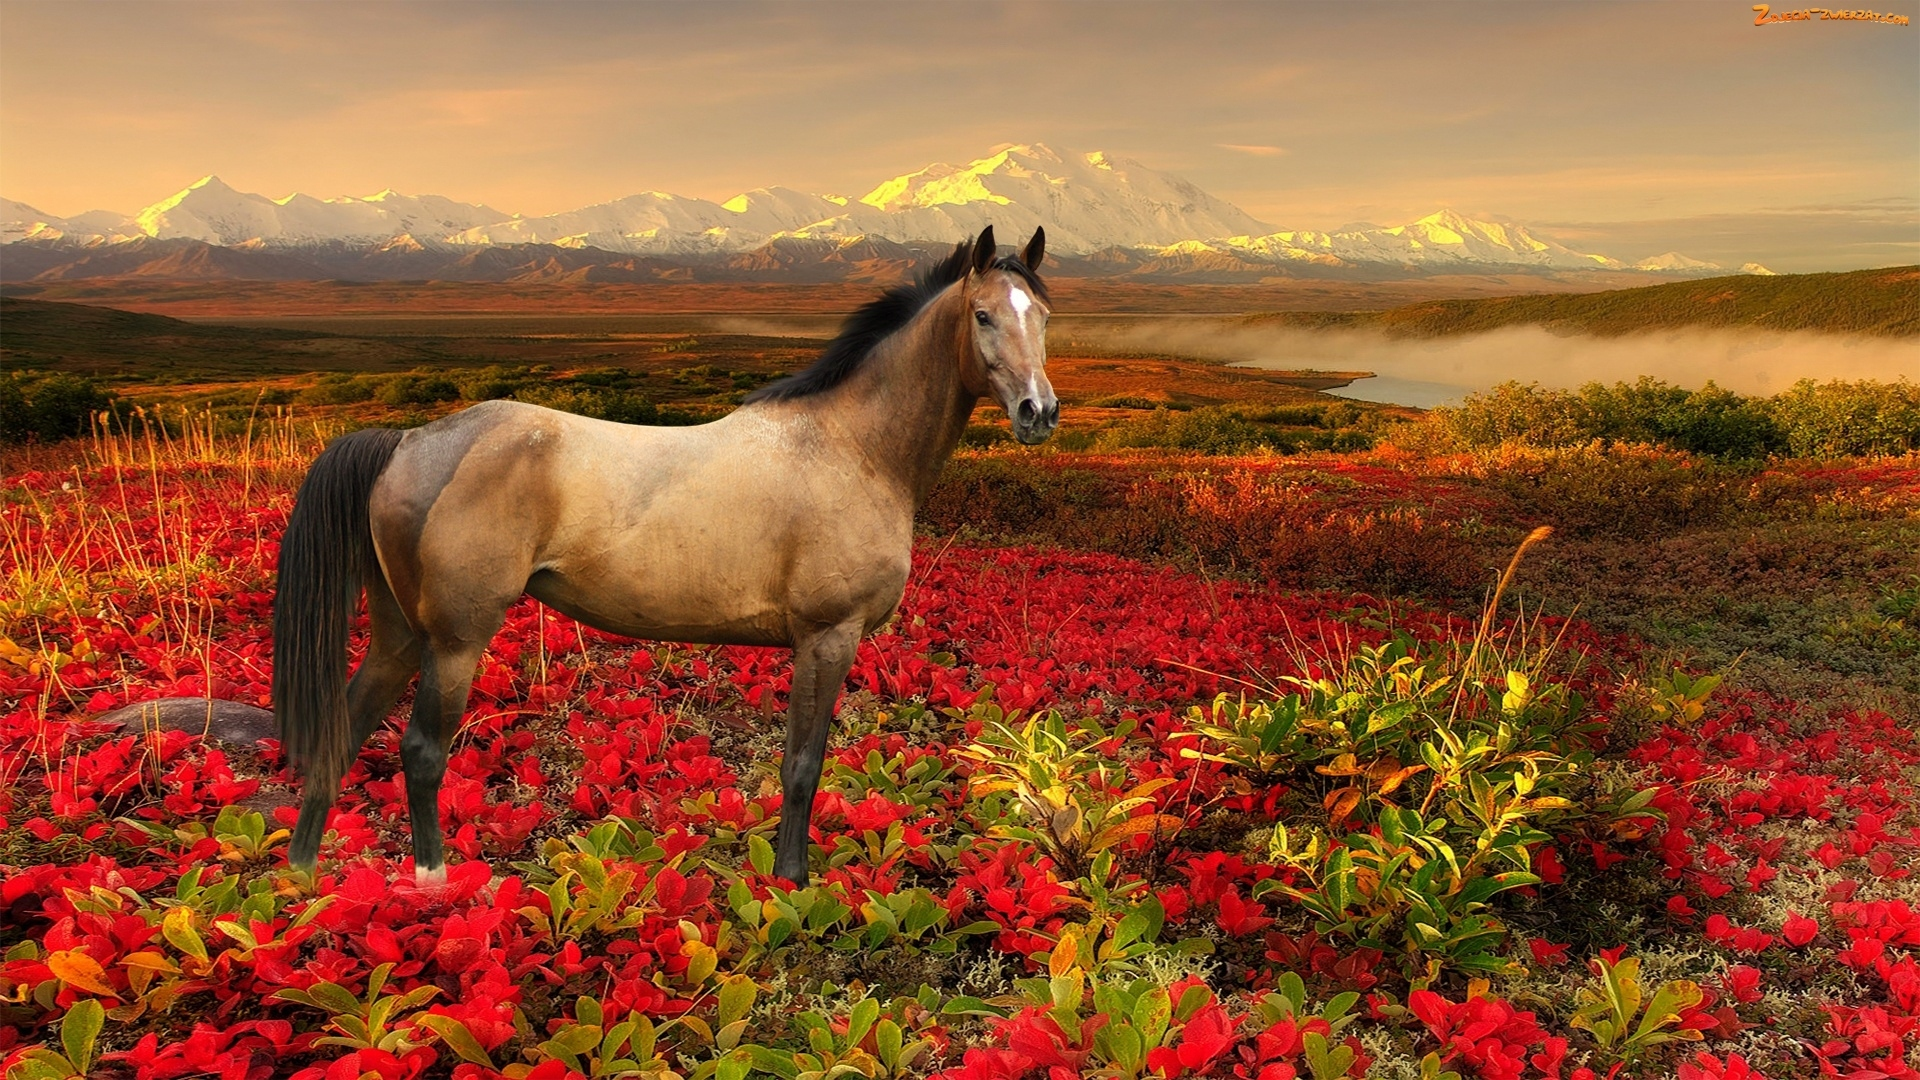 spring wild horse wallpaper - photo #32